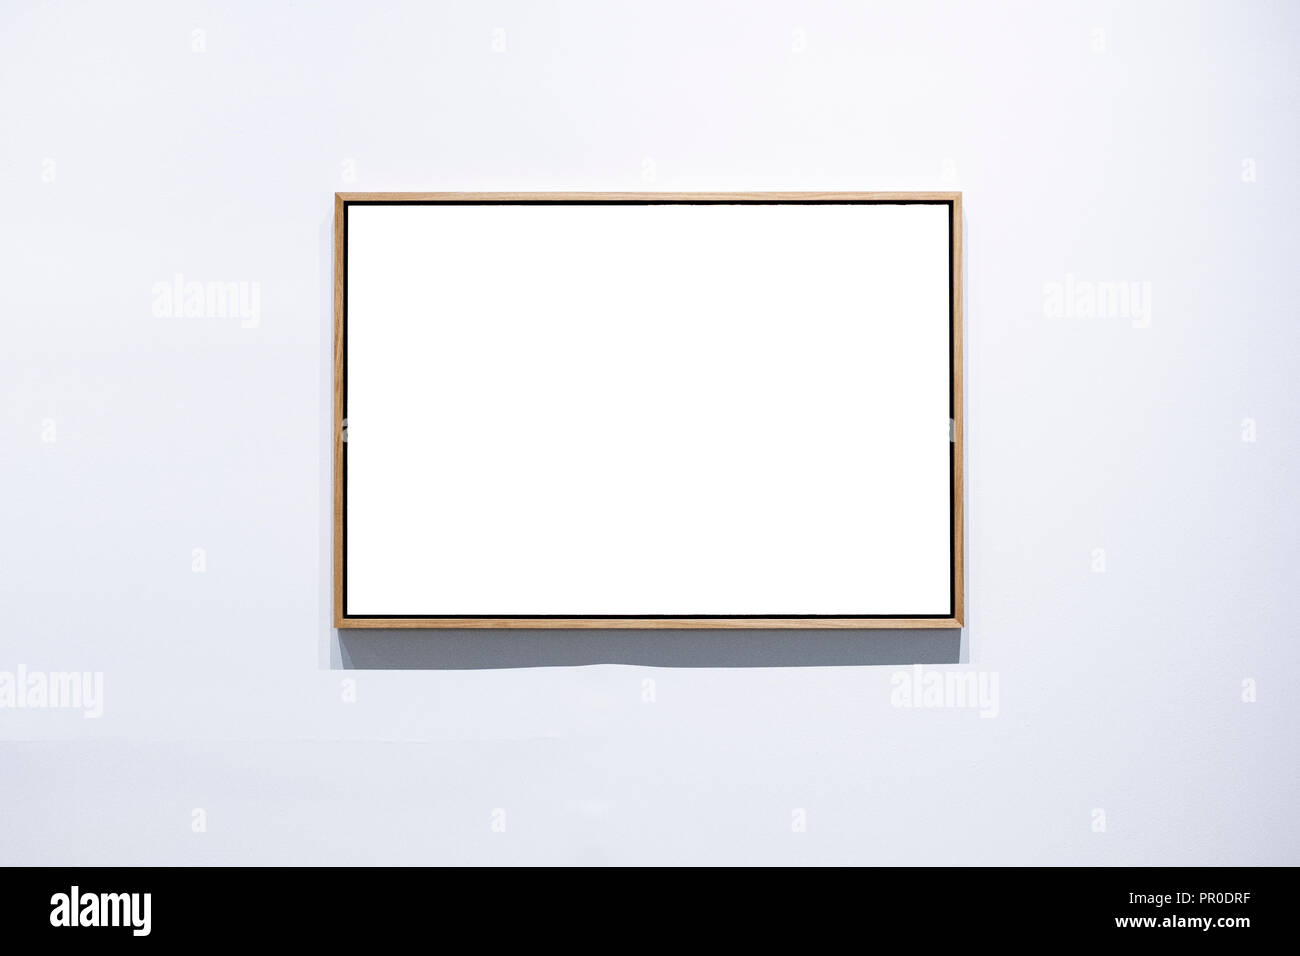 Wood frames on a white background frames on a white background Stock ...